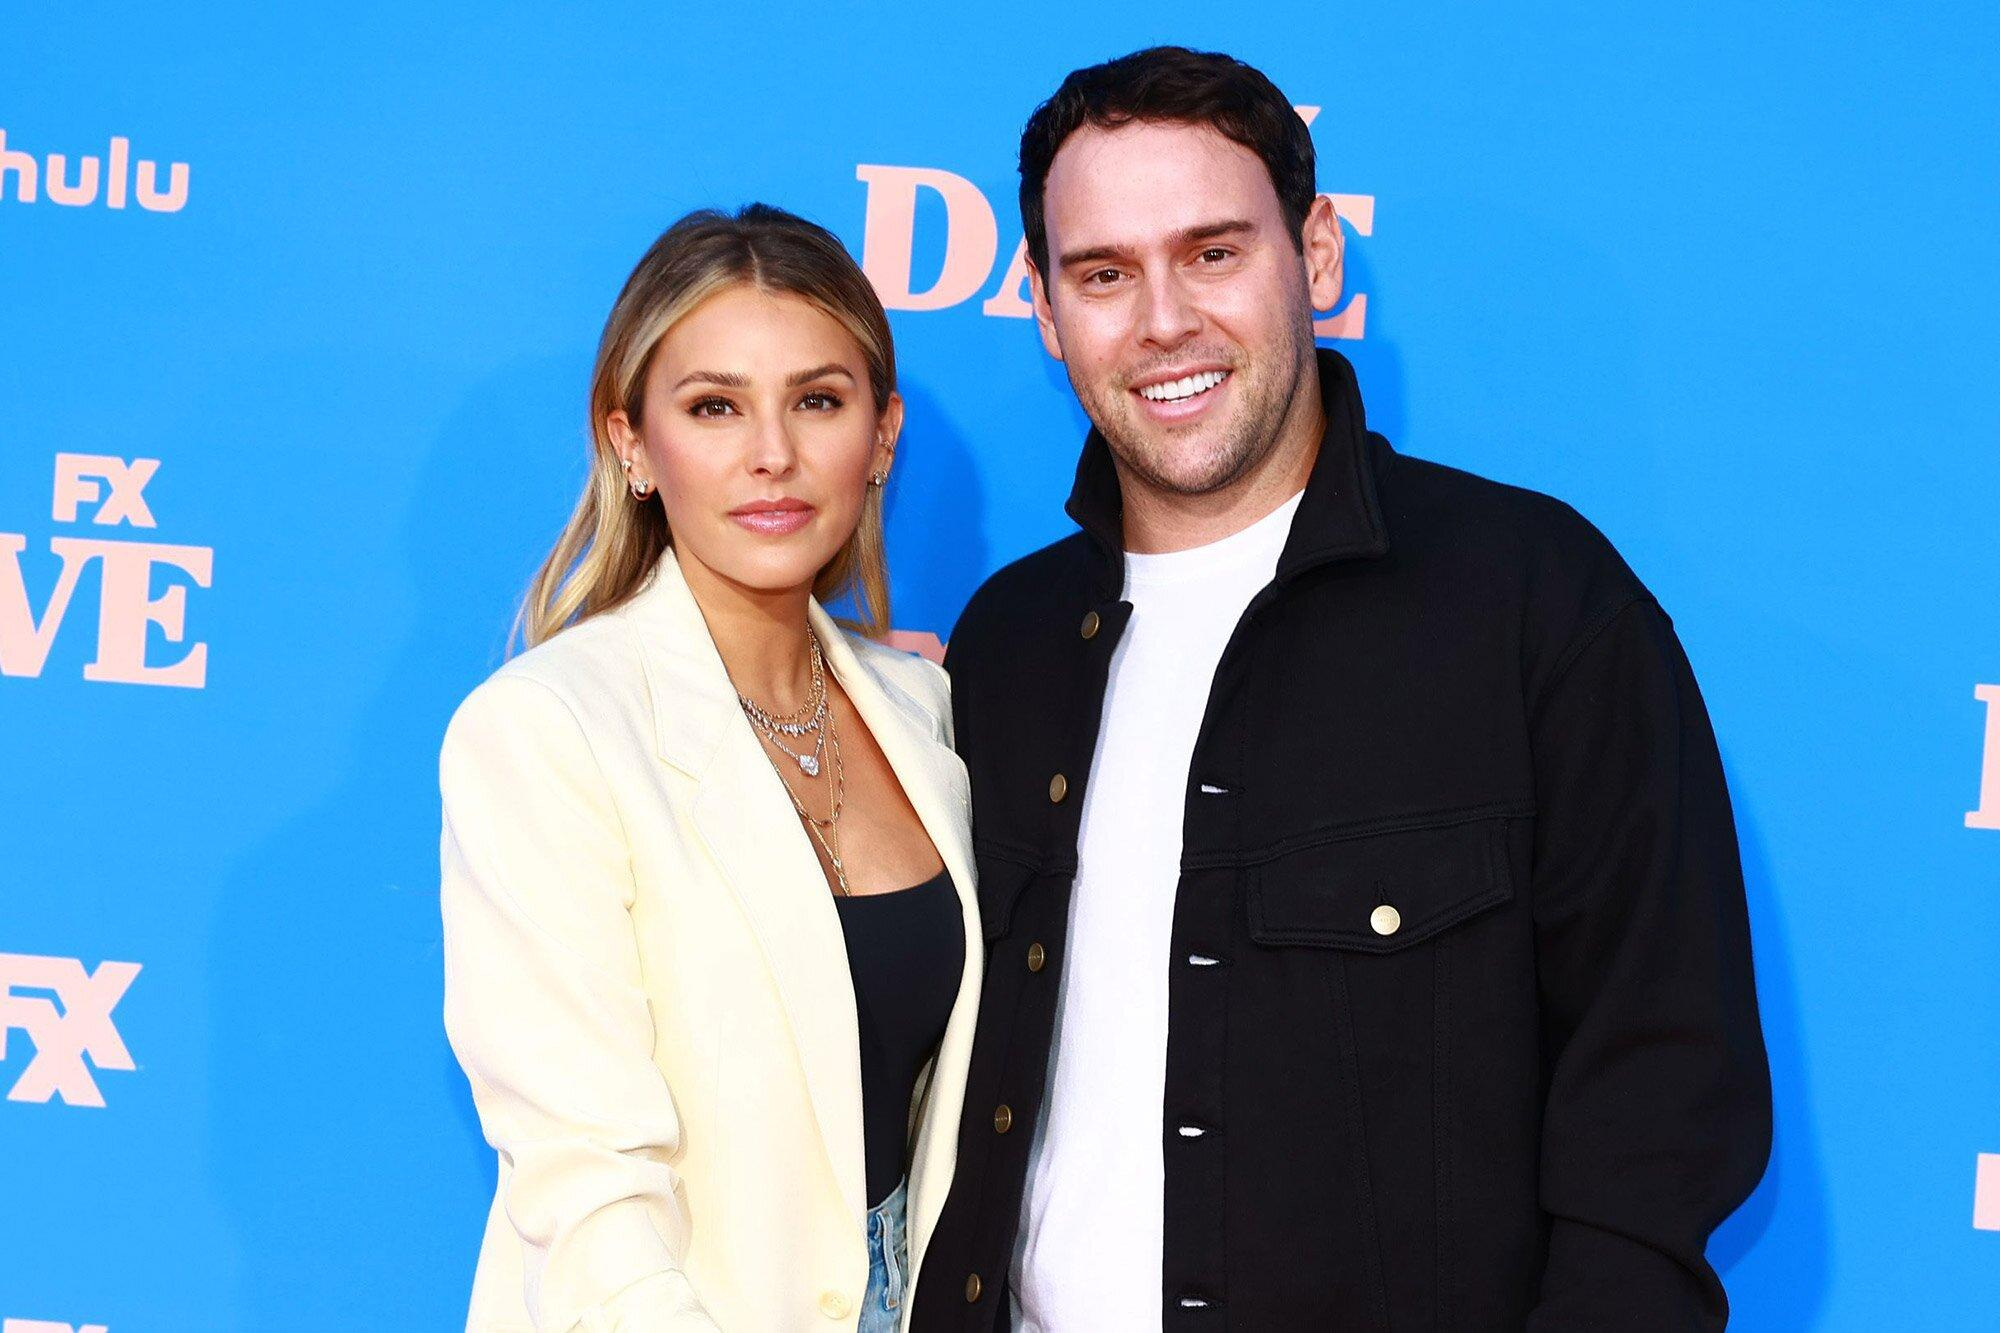 Scooter Braun Files for Divorce from Wife Yael Cohen After 7 Years of Marriage